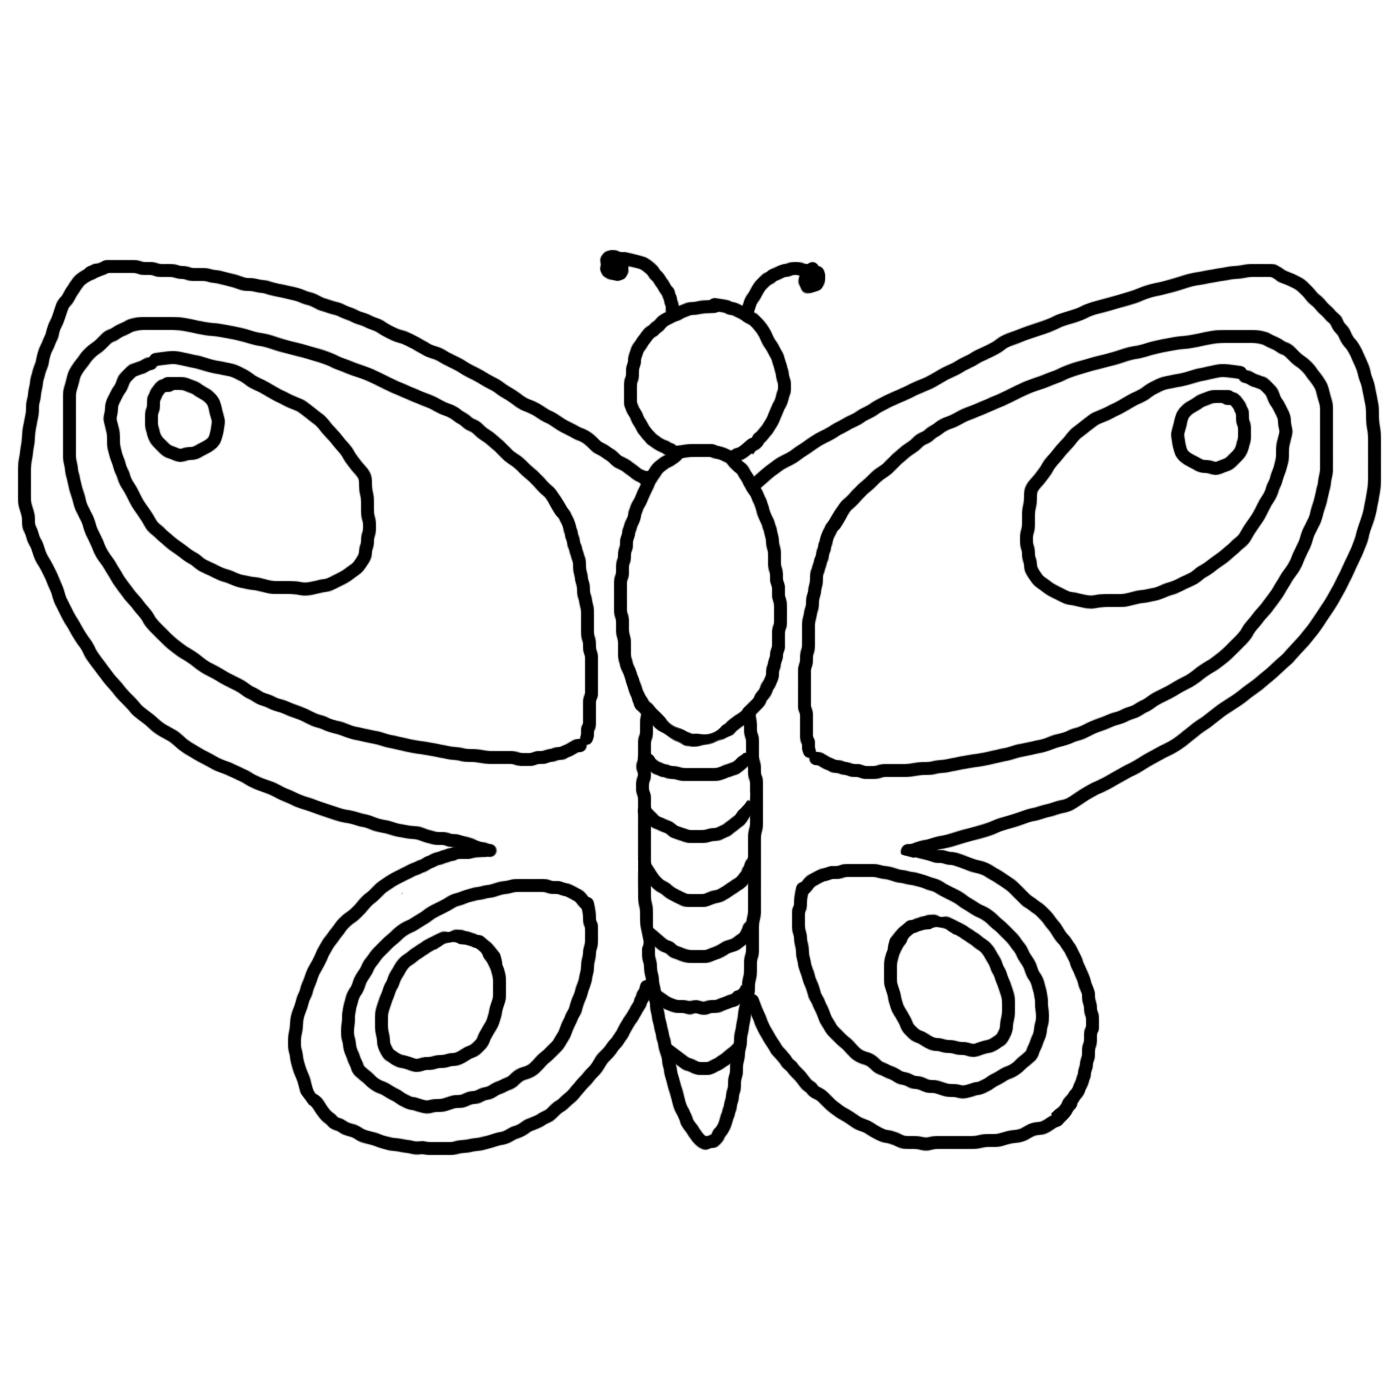 Simple Drawings Of Butterflies - ClipArt Best